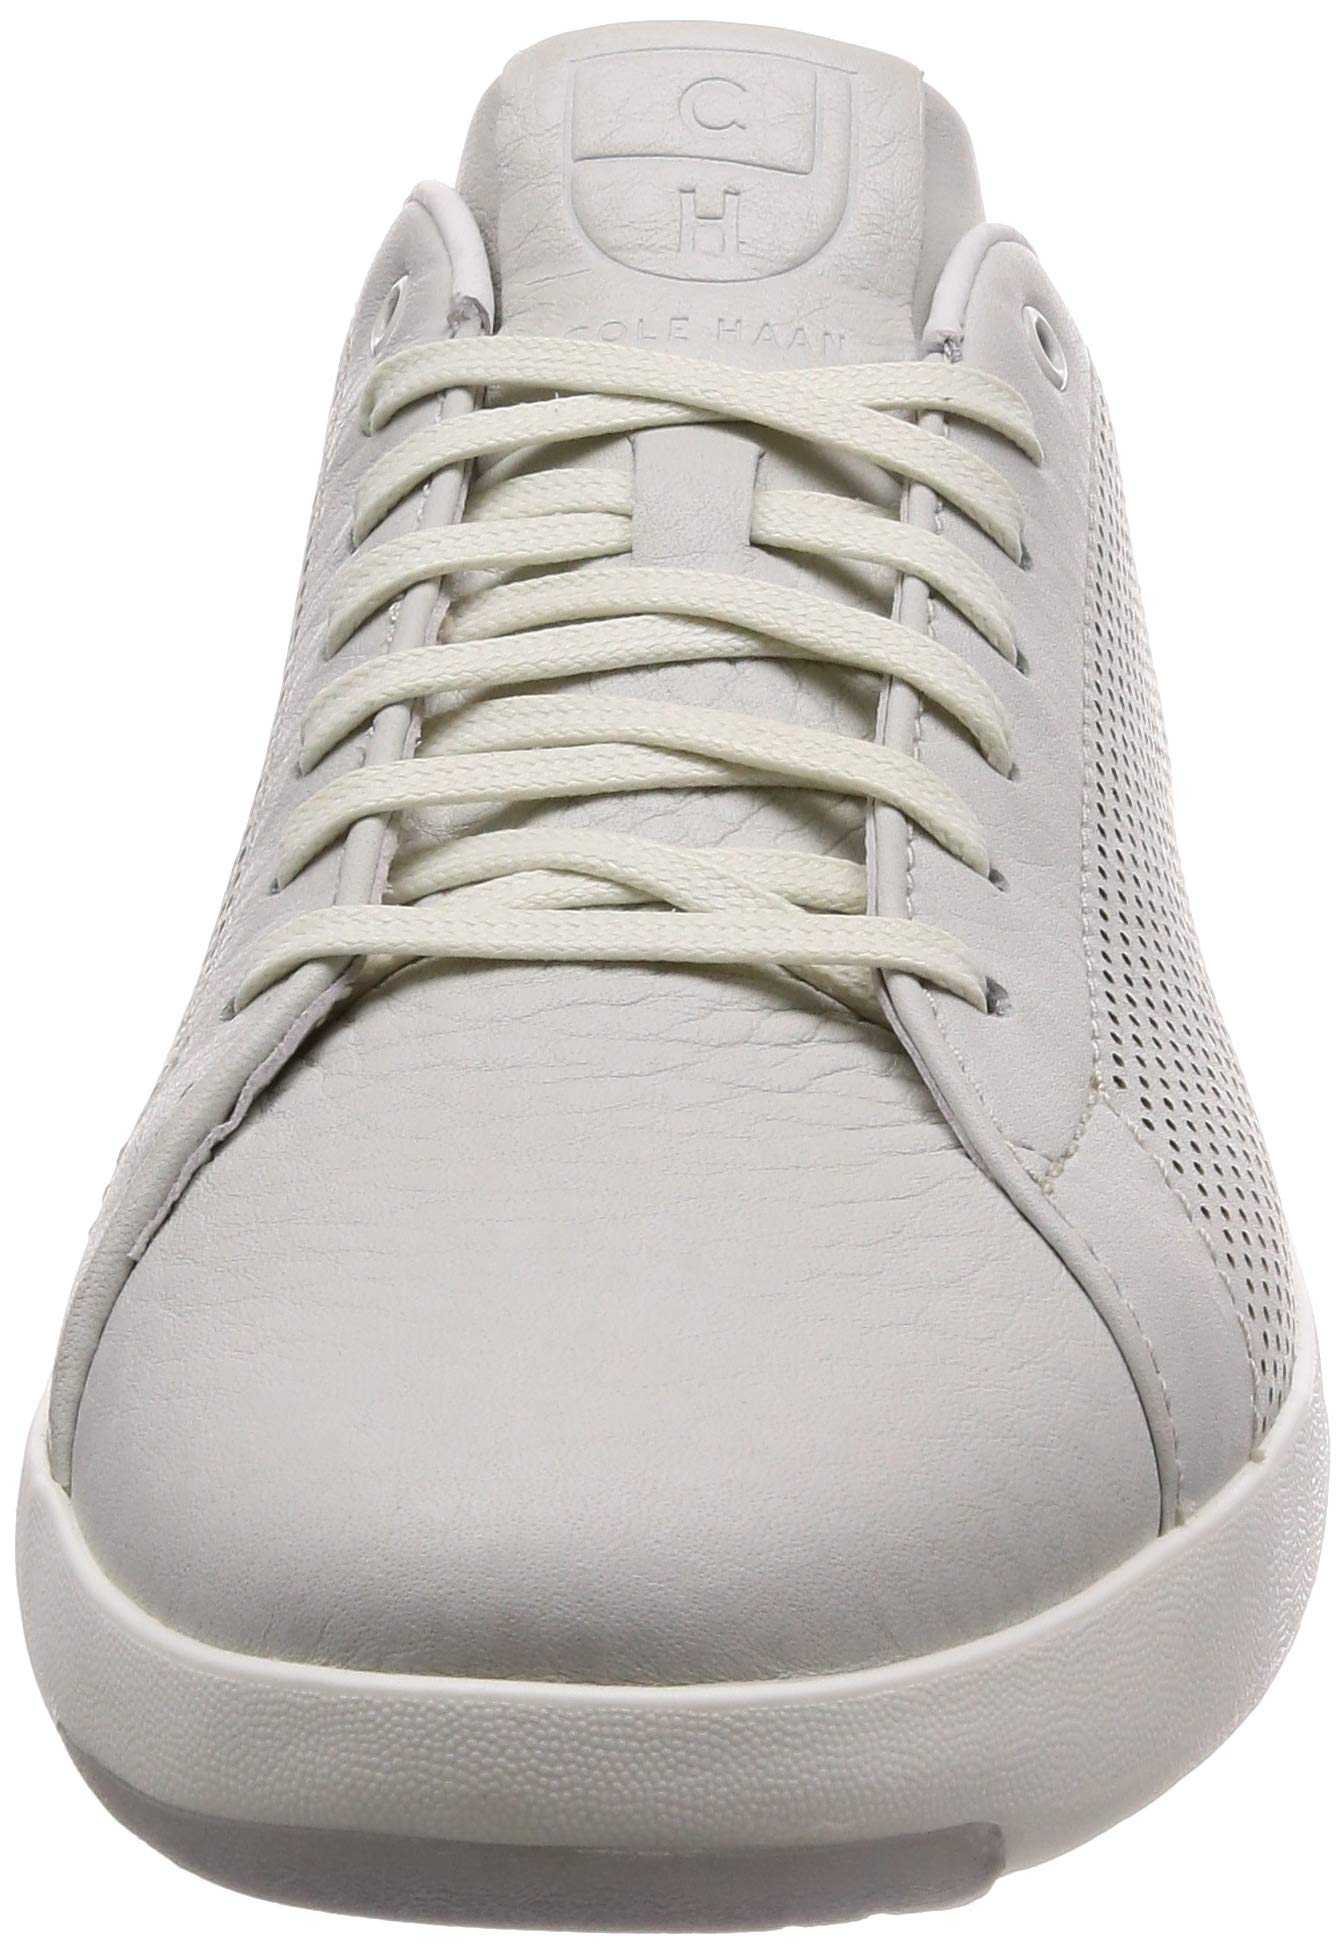 Cole Haan Mens Grandpro Tennis Sneaker 7 Chalk Tumbled Leather by Cole Haan (Image #4)